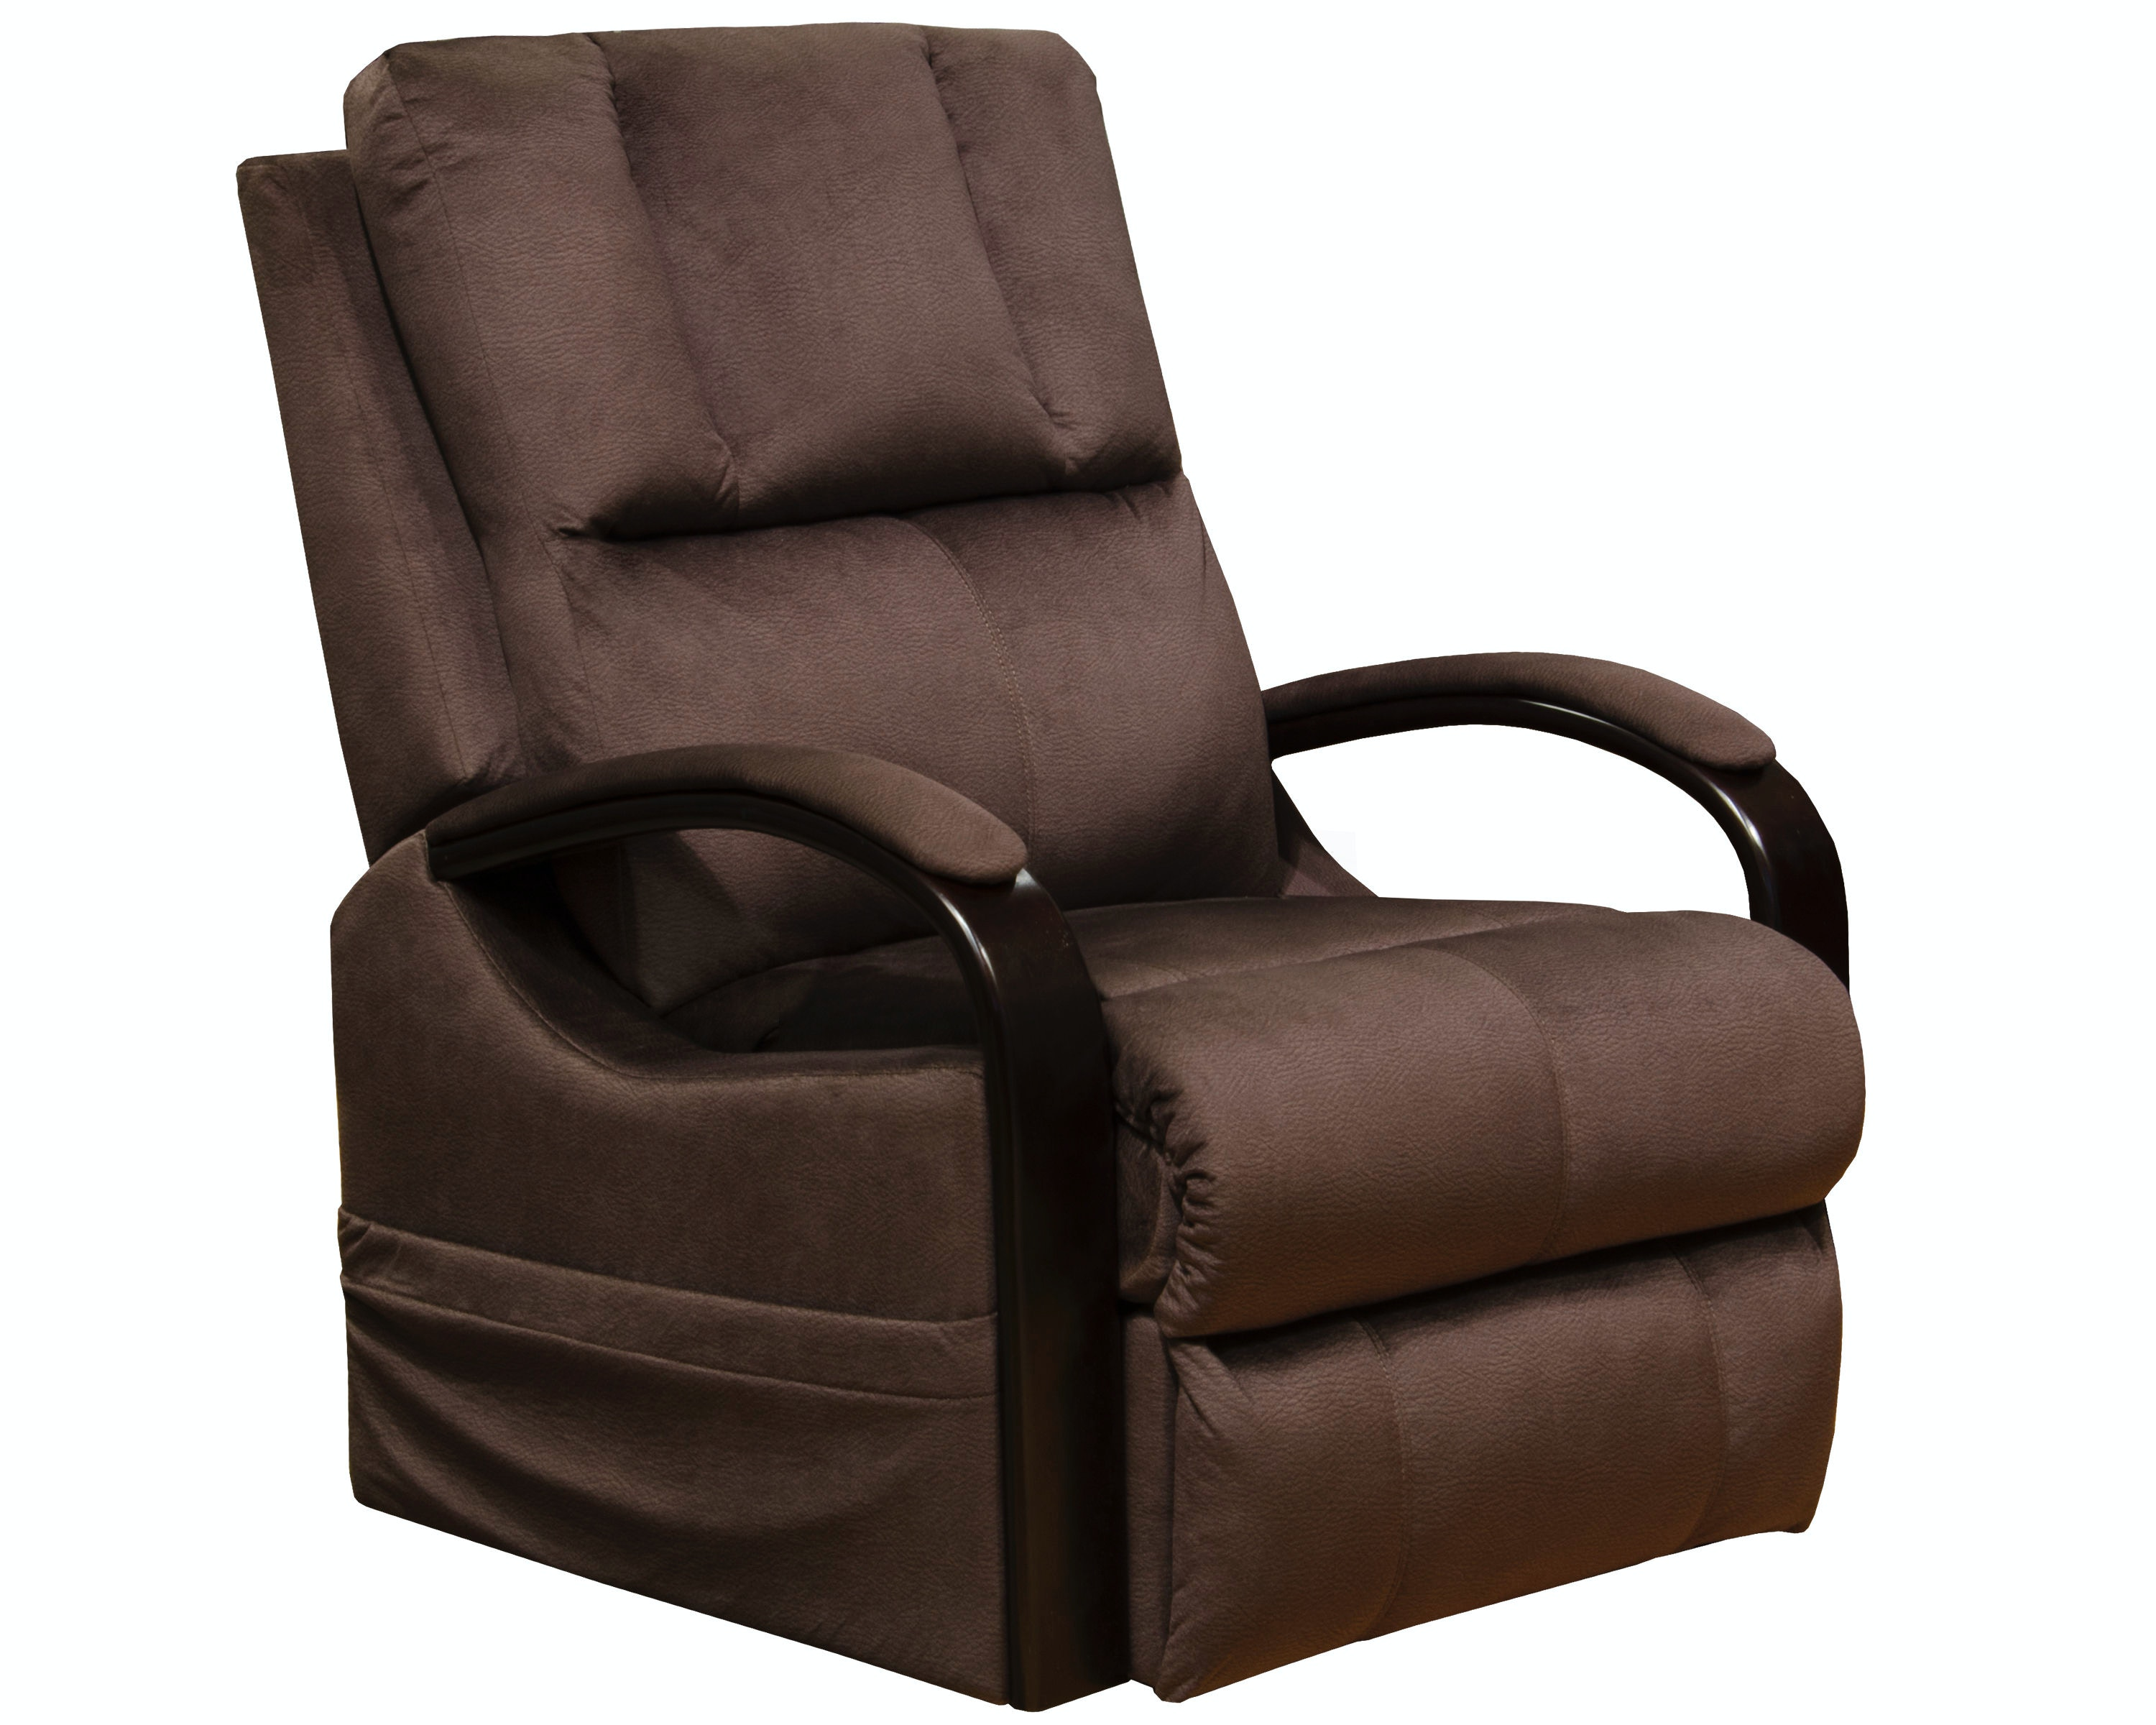 Superbe Catnapper Furniture Living Room Power Lift Recliner W/Heat And Massage 4863  At Patrick Furniture